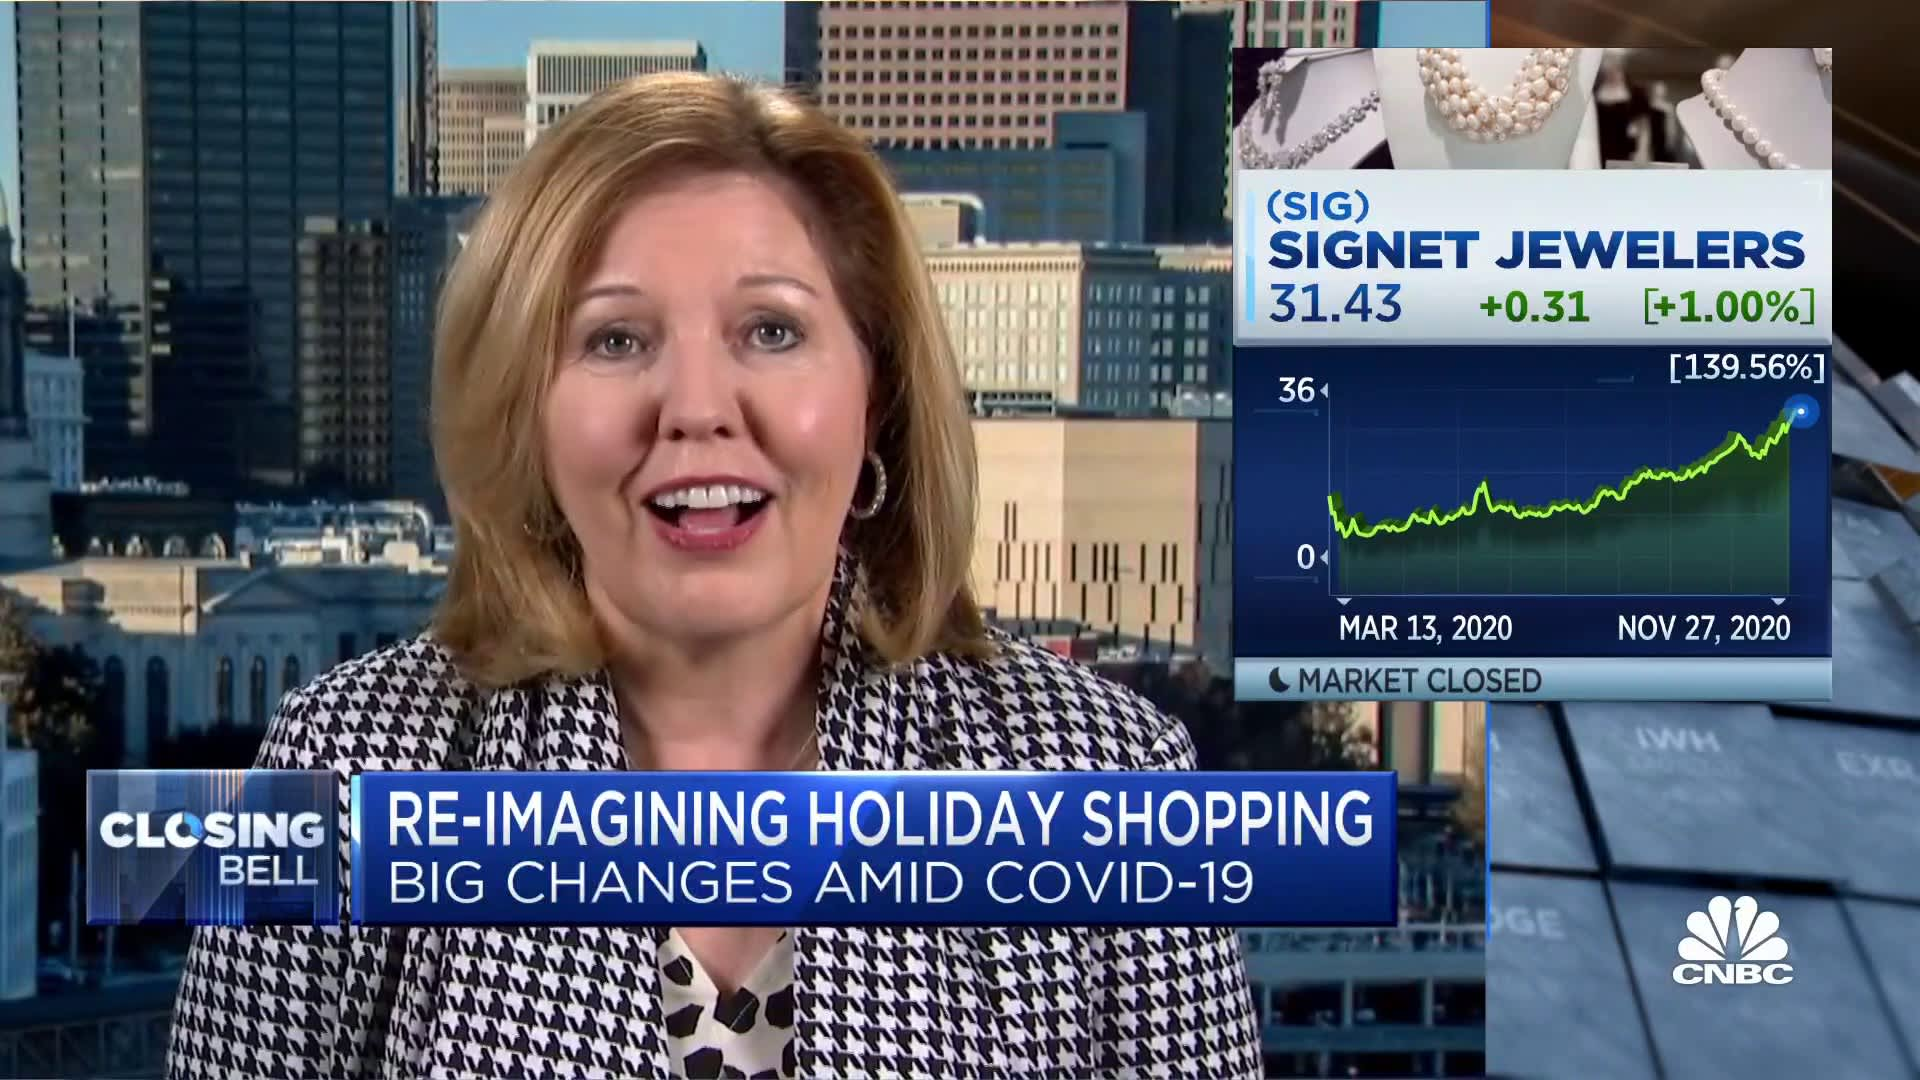 Black Friday 2020 Live Updates: Latest news on Black Friday and holiday  shopping